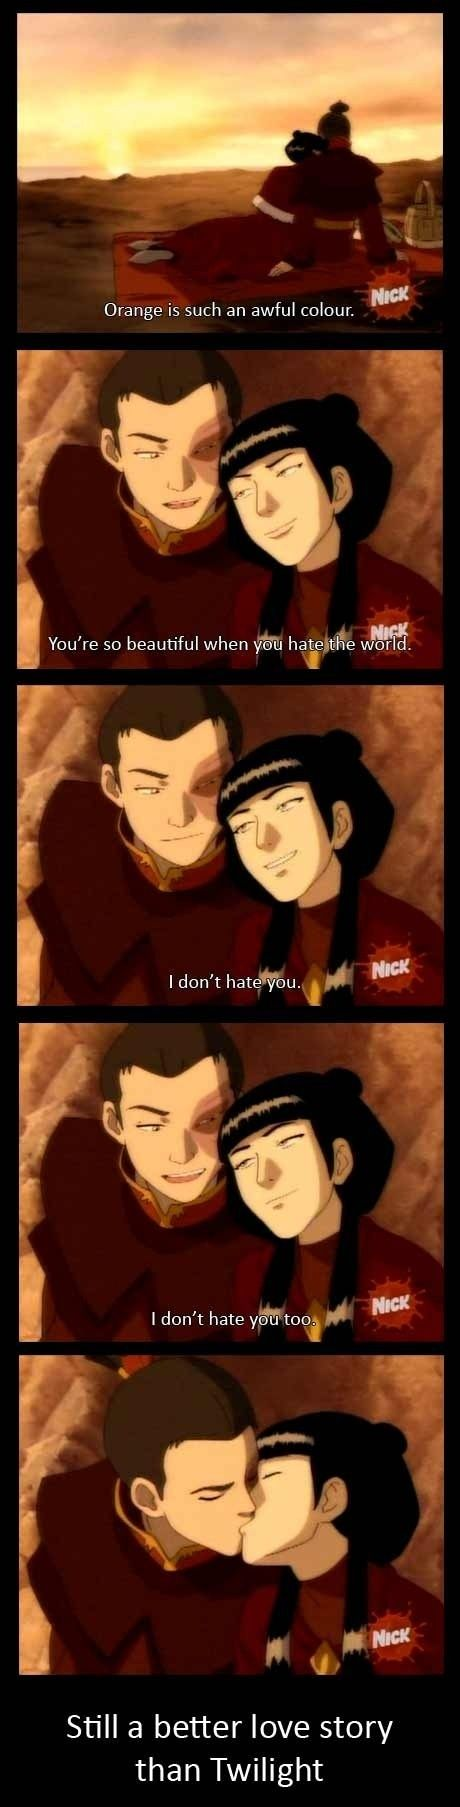 Ahahhaa. I hate Twilight.  Avatar the Last Airbender. FTW. <3